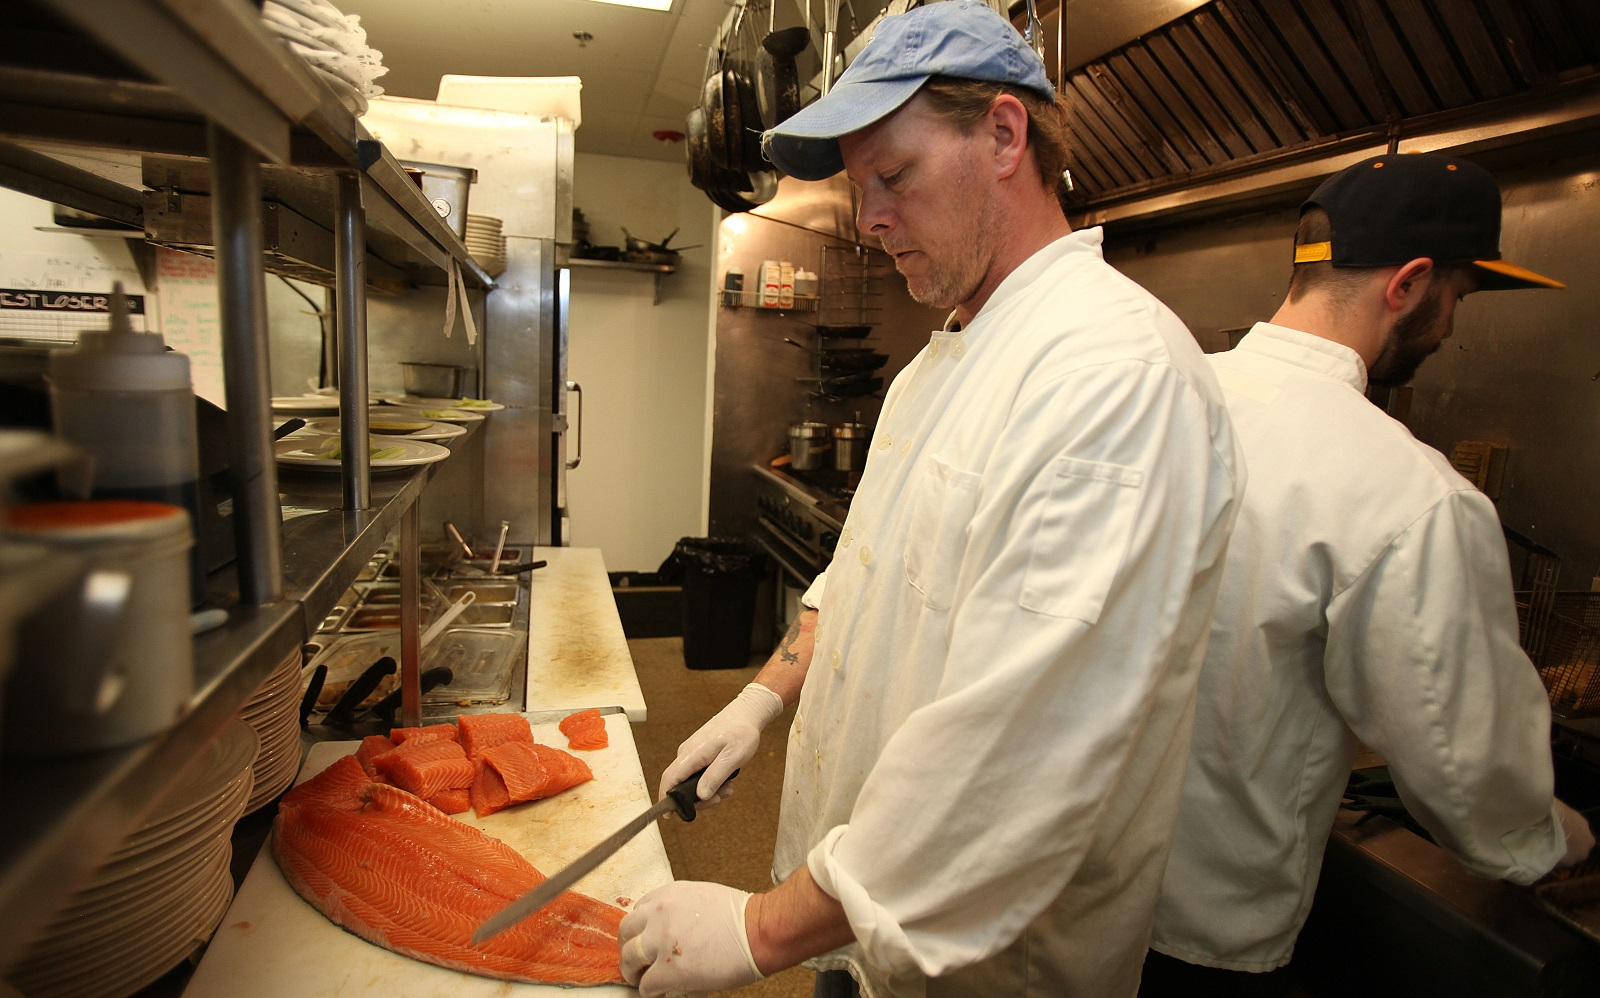 Chef Jerry O'Neill cuts up salmon in the kitchen at Hideaway Grille. (Buffalo News file photo)